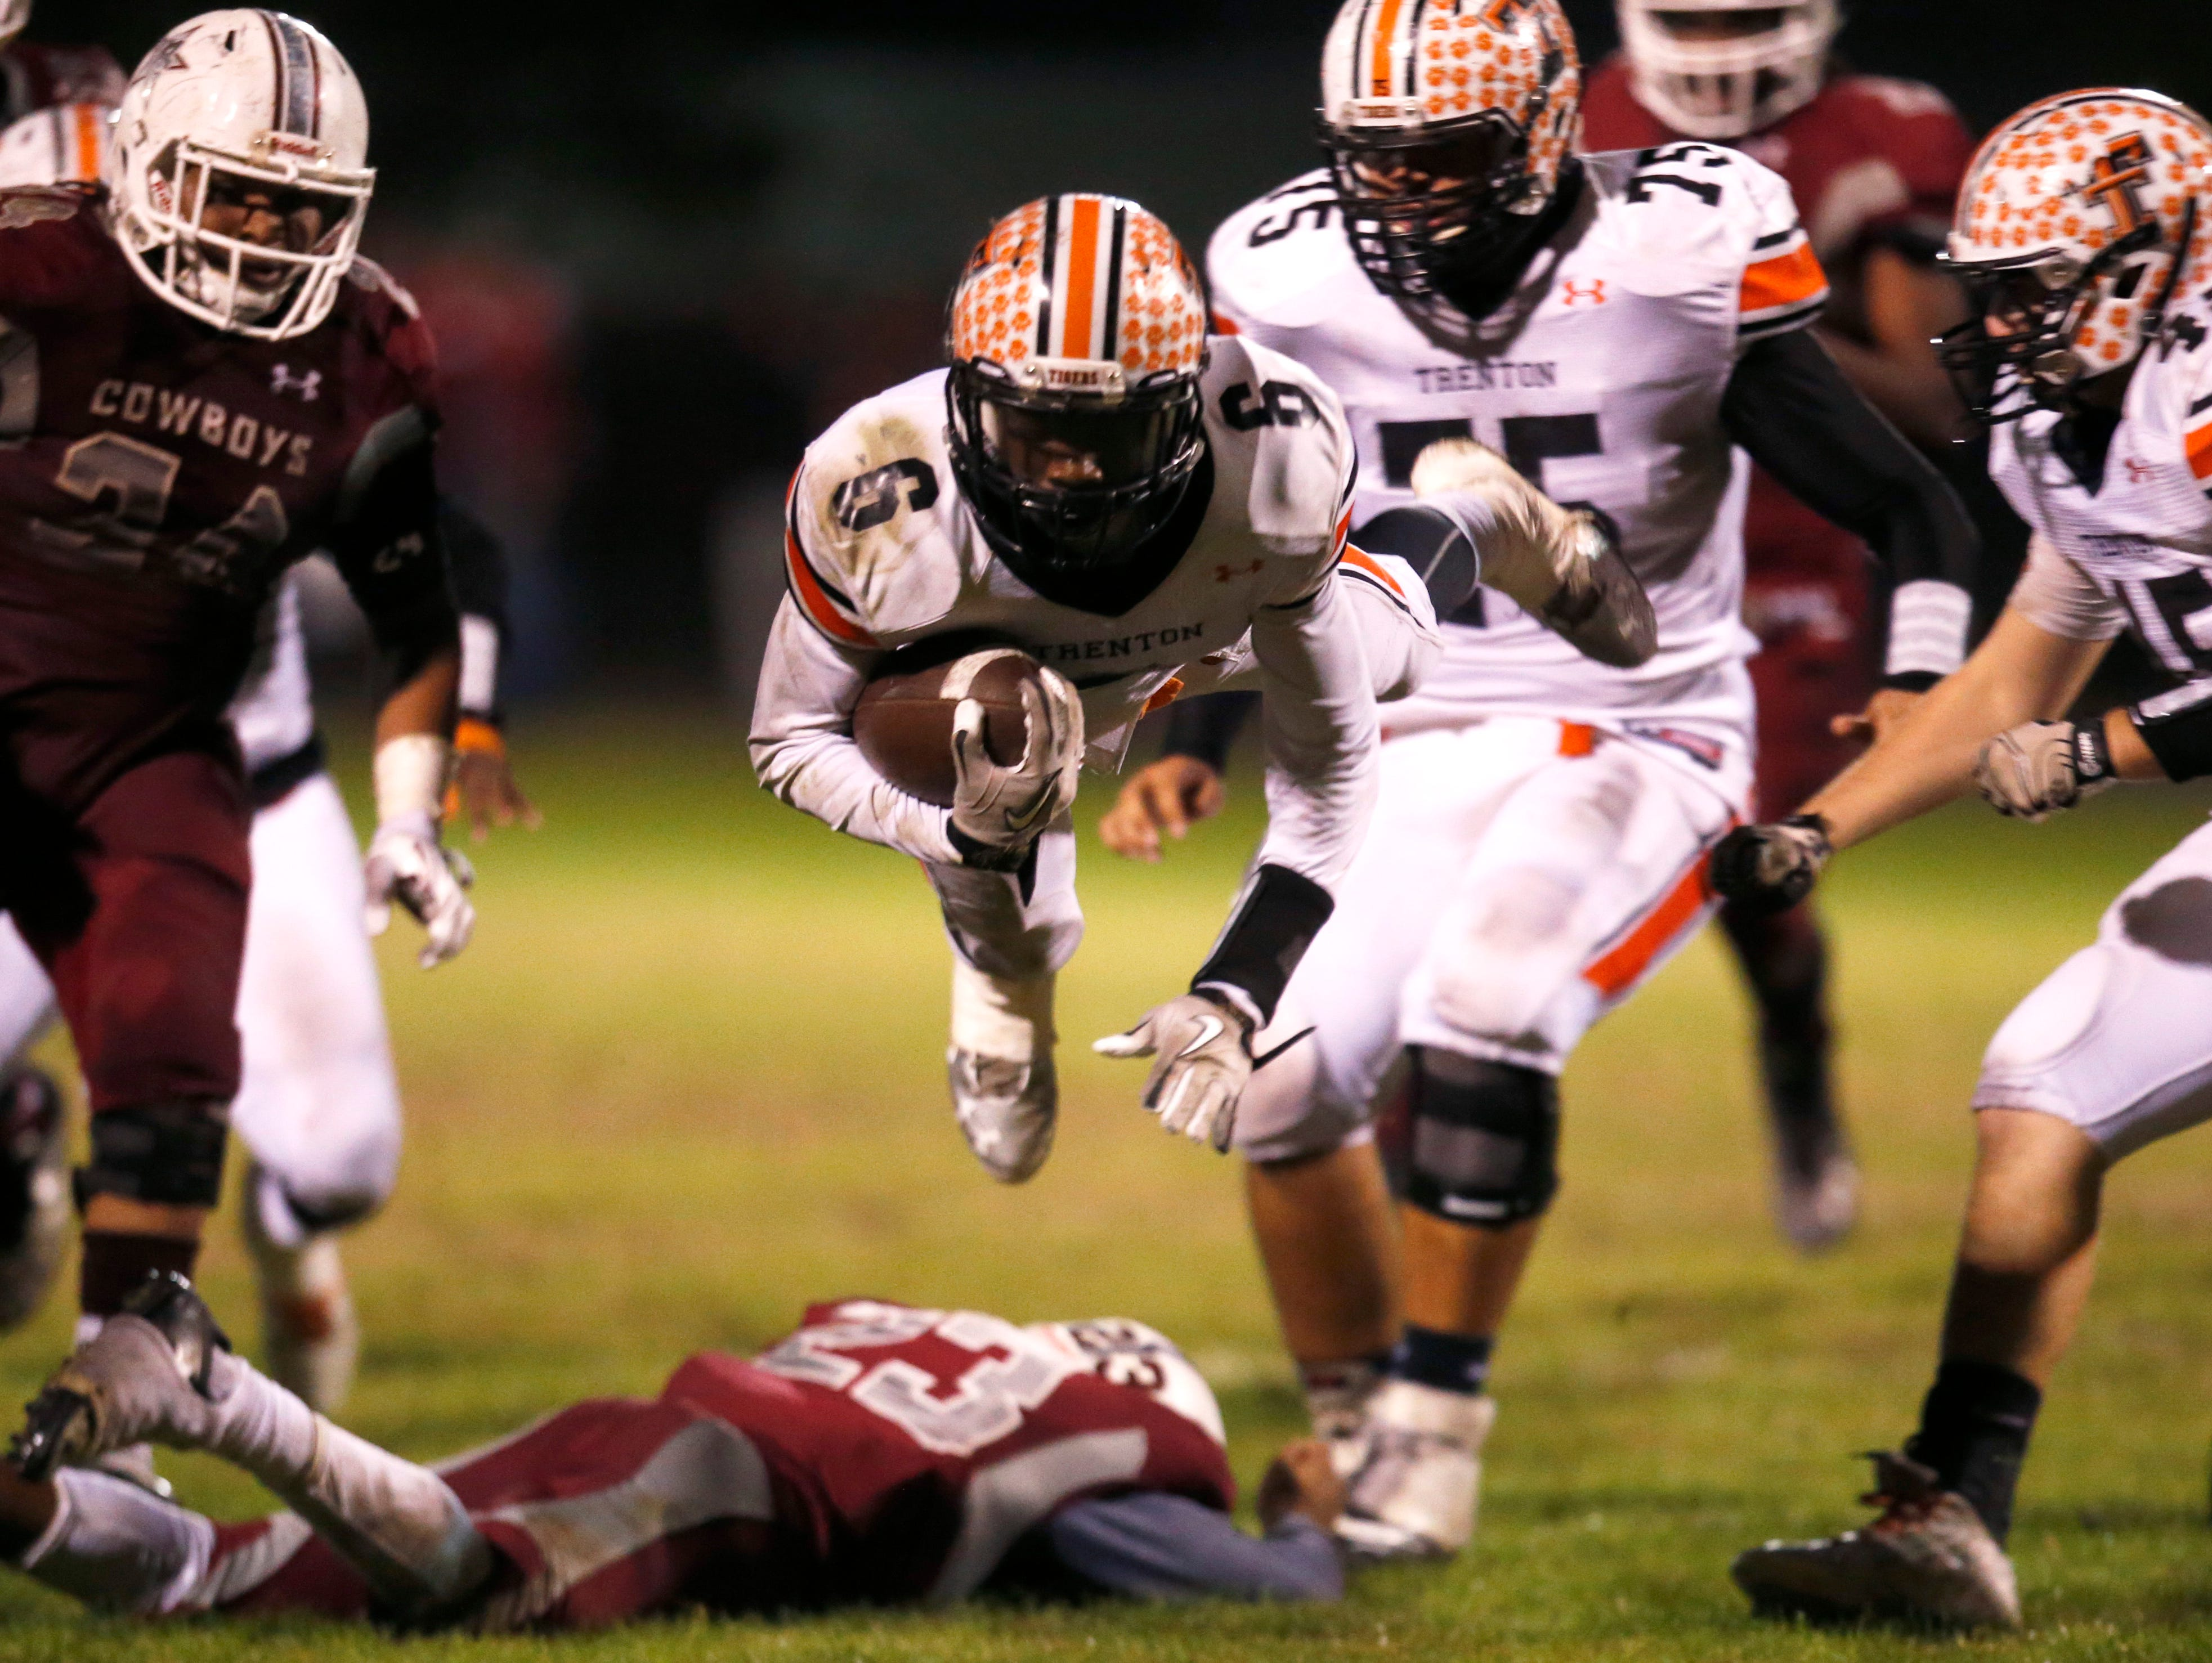 Trenton's Montrez Jackson dives forwards after being tackled by Madison County's Tinarus Irvine during their playoff game on Friday.